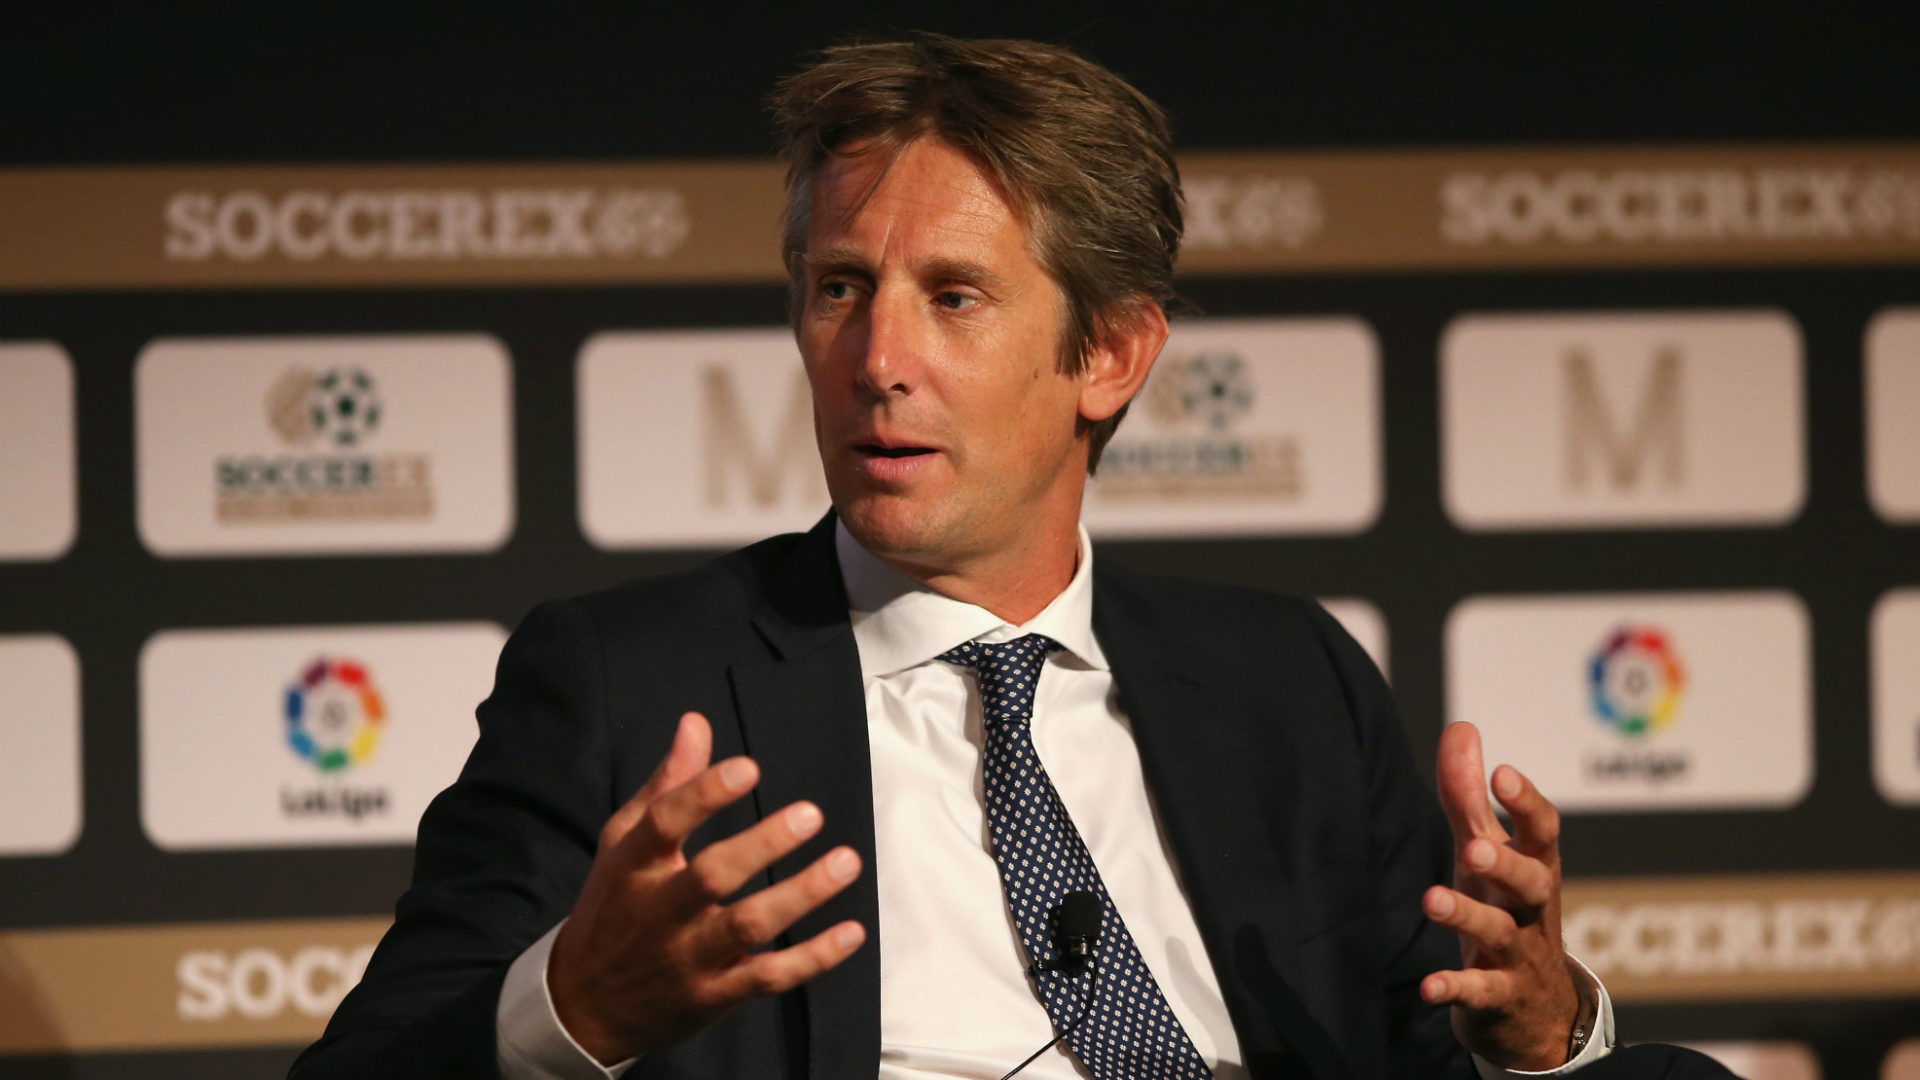 Edwin van der Sar believes lack of leadership to blame for woes